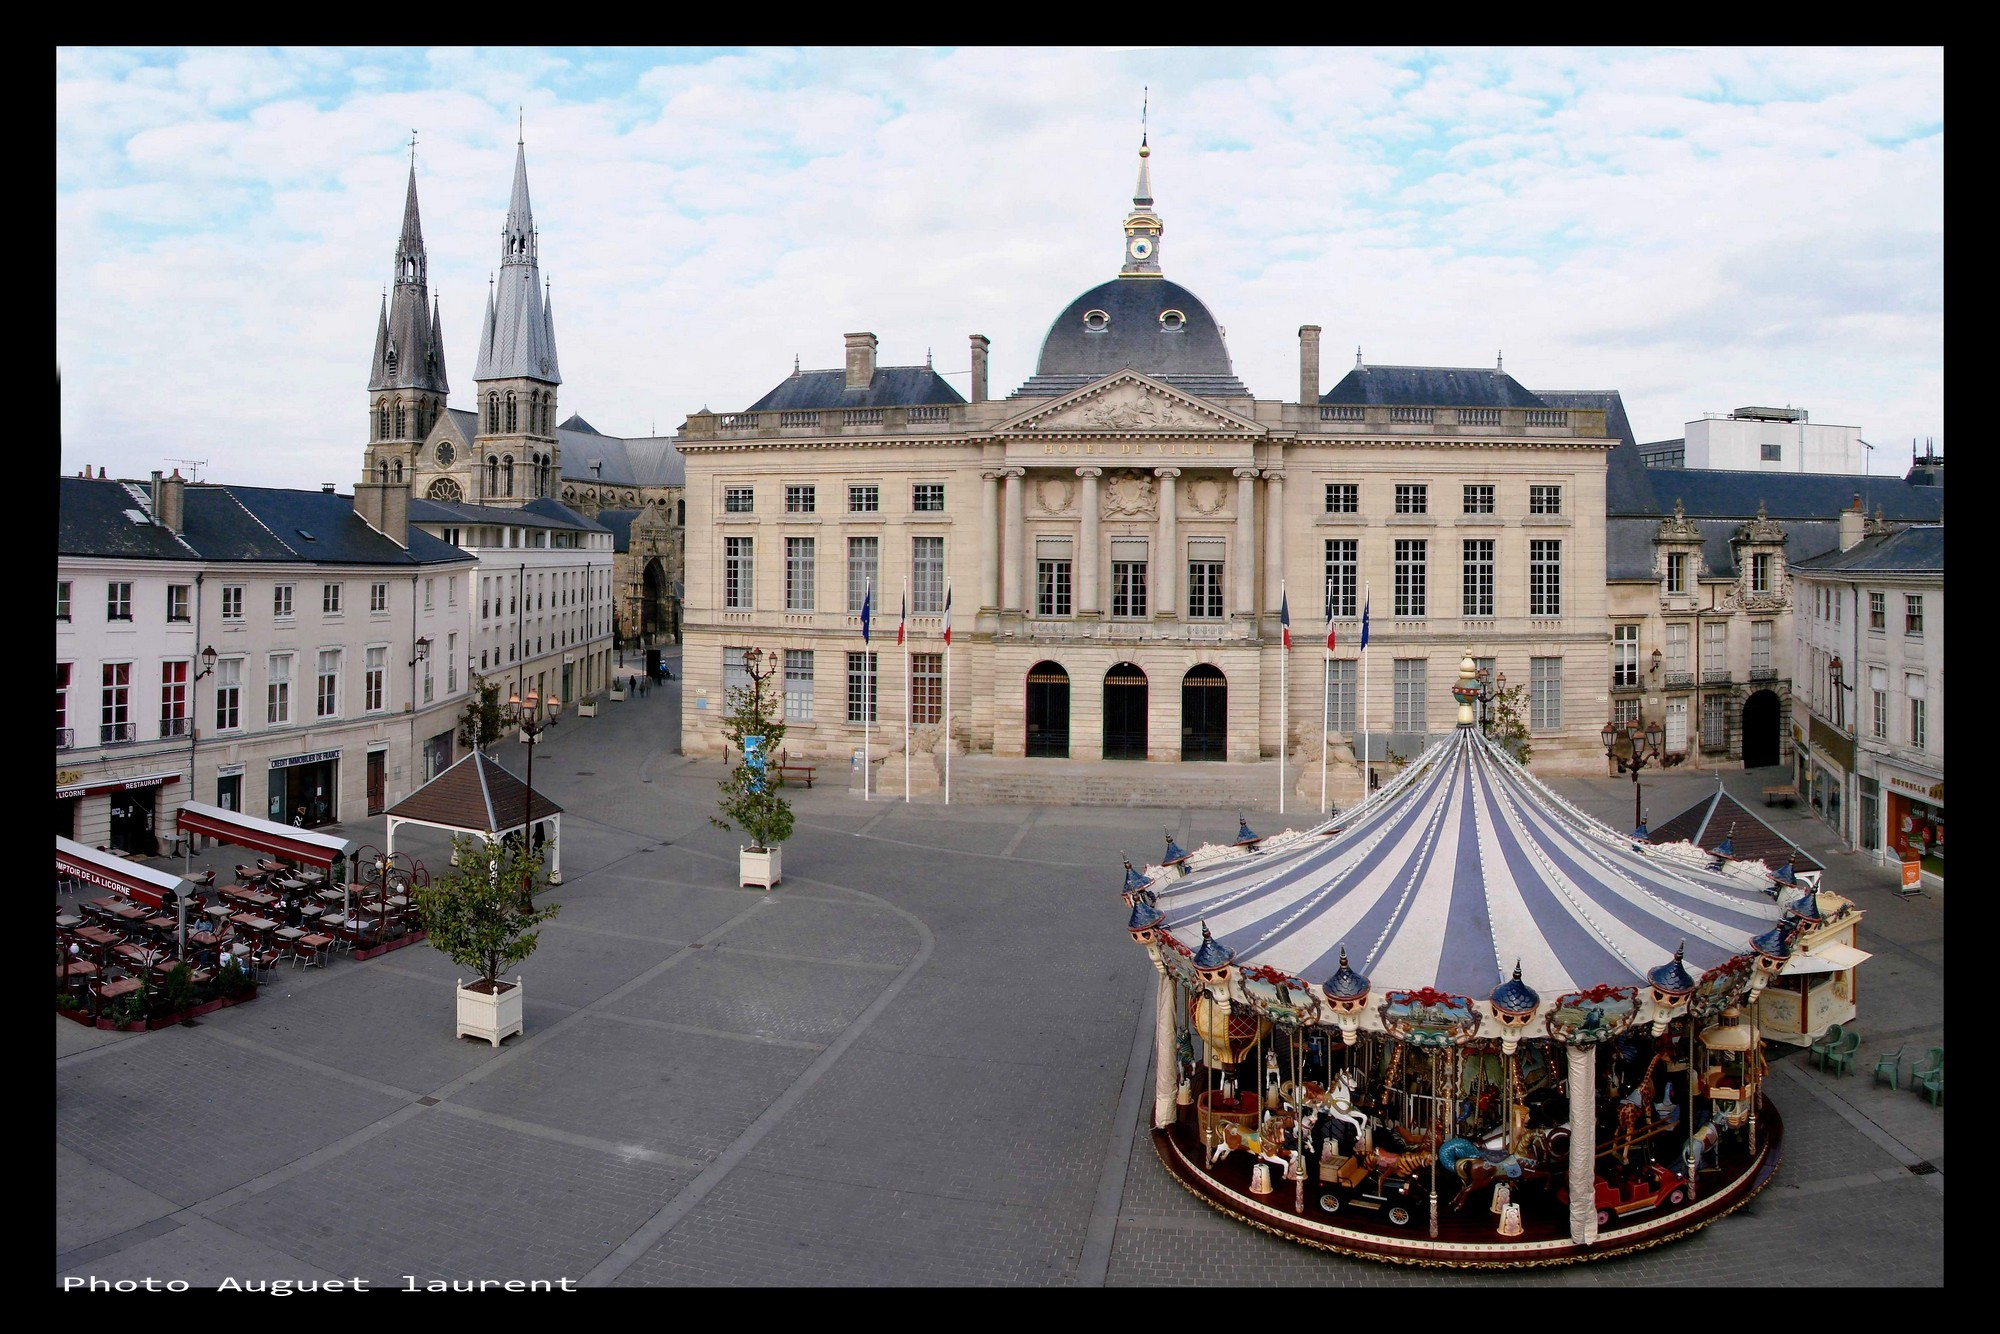 file hotel de ville mairie chalons en champagne photo auguet wikimedia commons. Black Bedroom Furniture Sets. Home Design Ideas